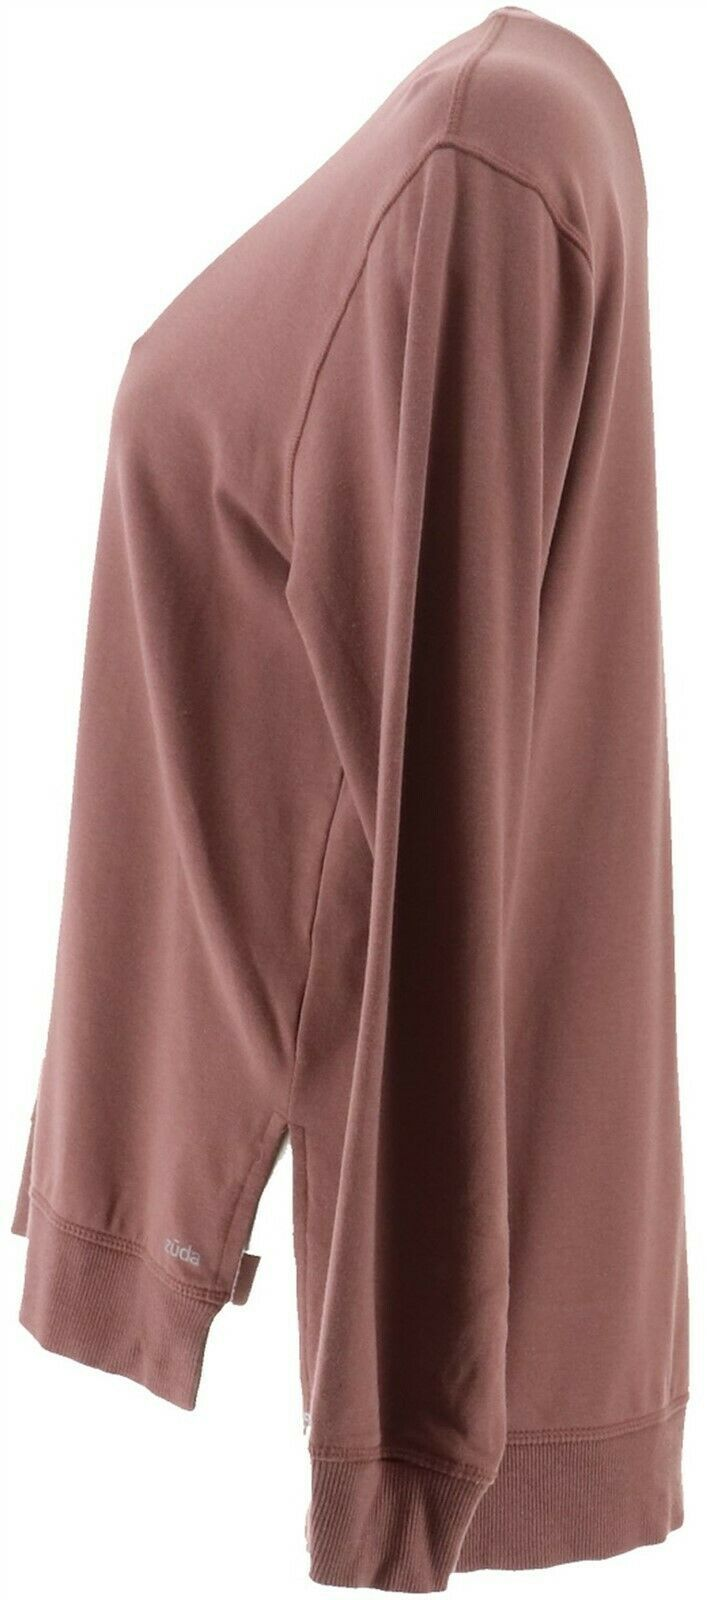 Zuda Z-Knit French Terry Pullover Semi-Fitted Side Slits Sweatshirt, Medium, Rose Taupe